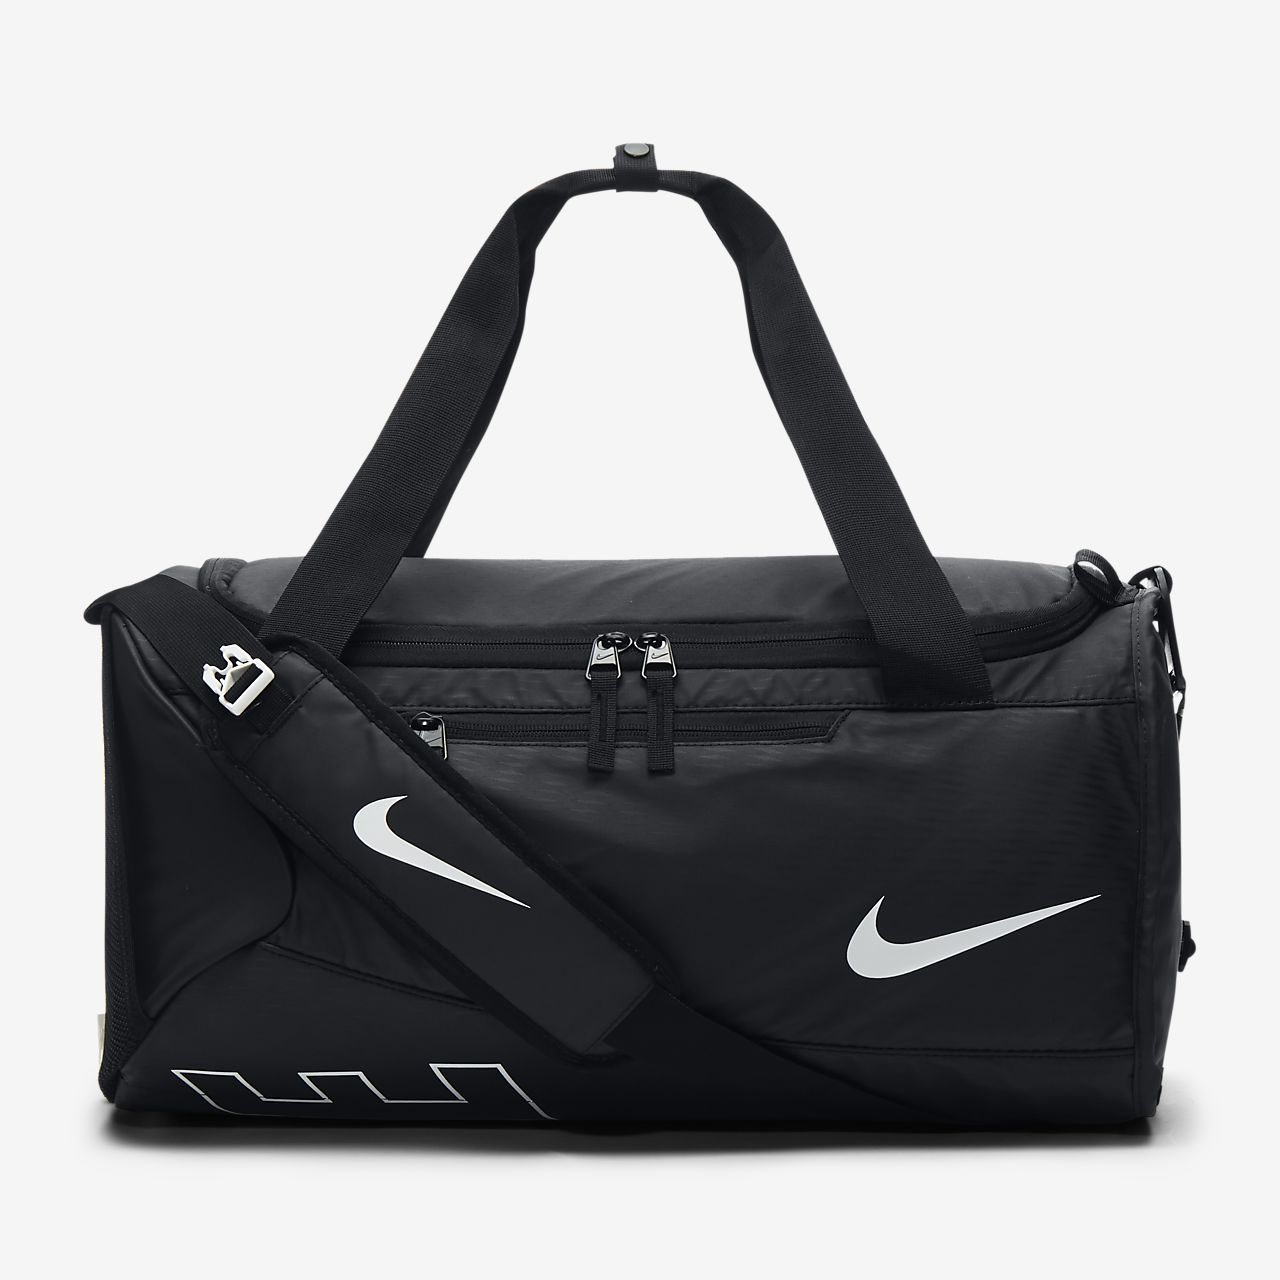 Nike Sac de sport Alpha adapt cross body M dhLOg